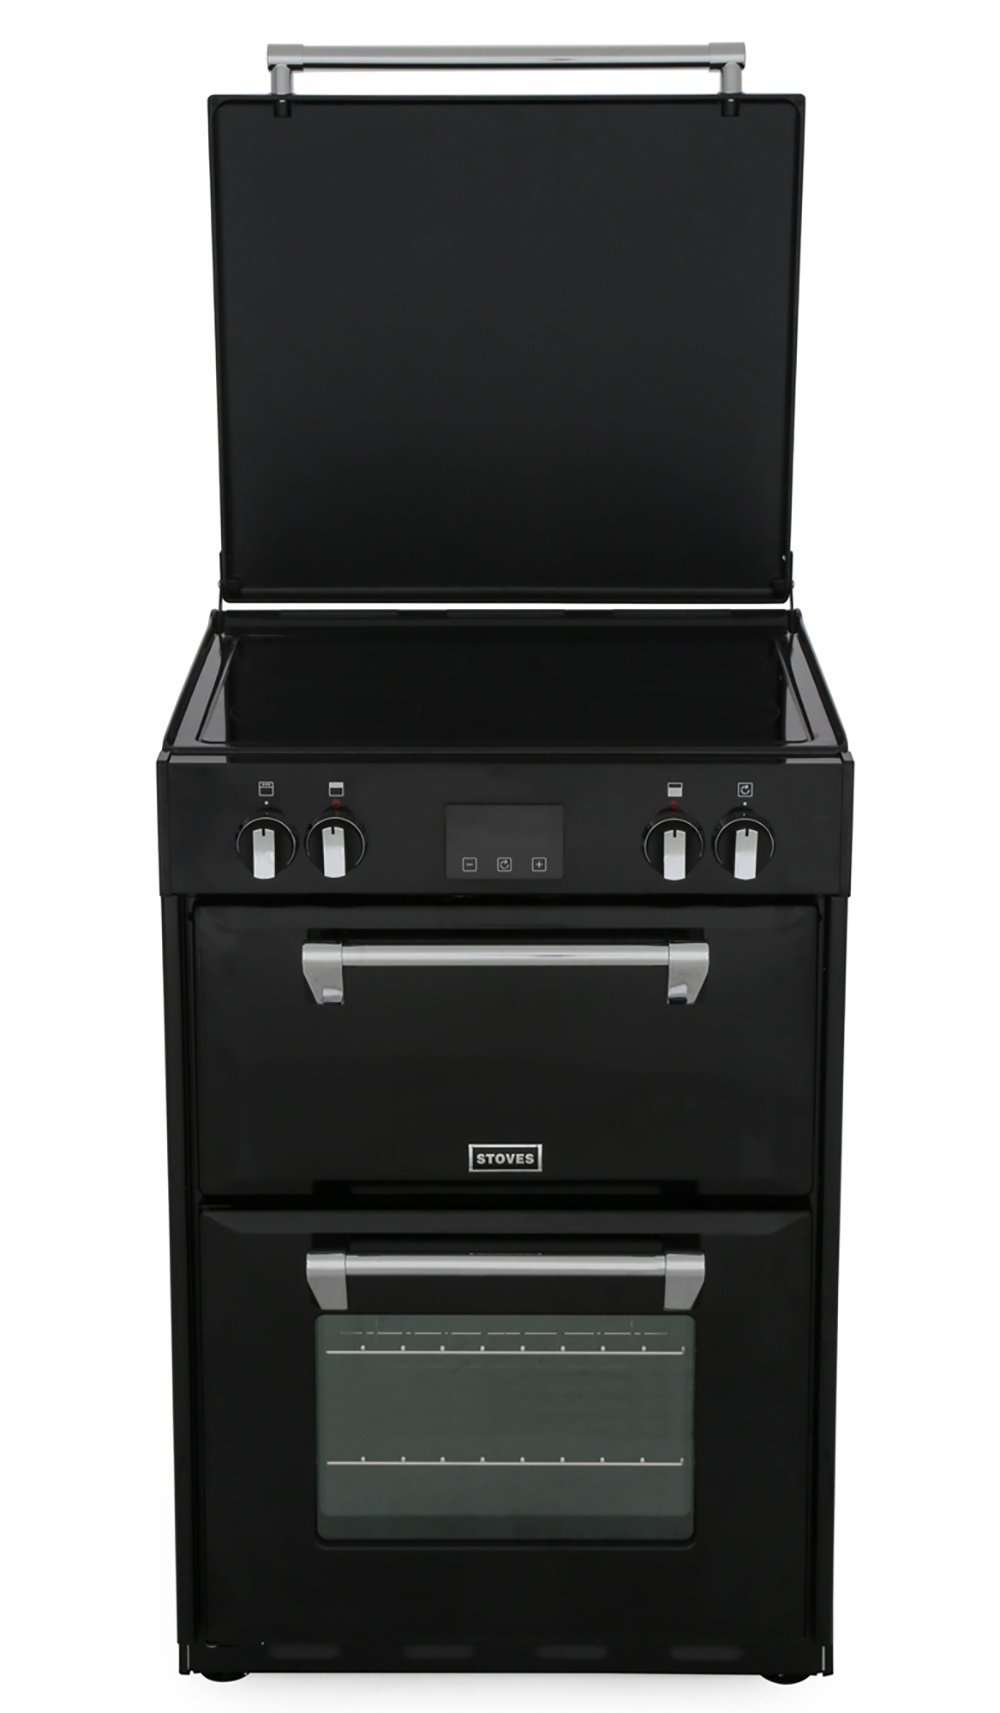 Stoves Richmond 600Ei Black Induction Electric Cooker with Double Oven